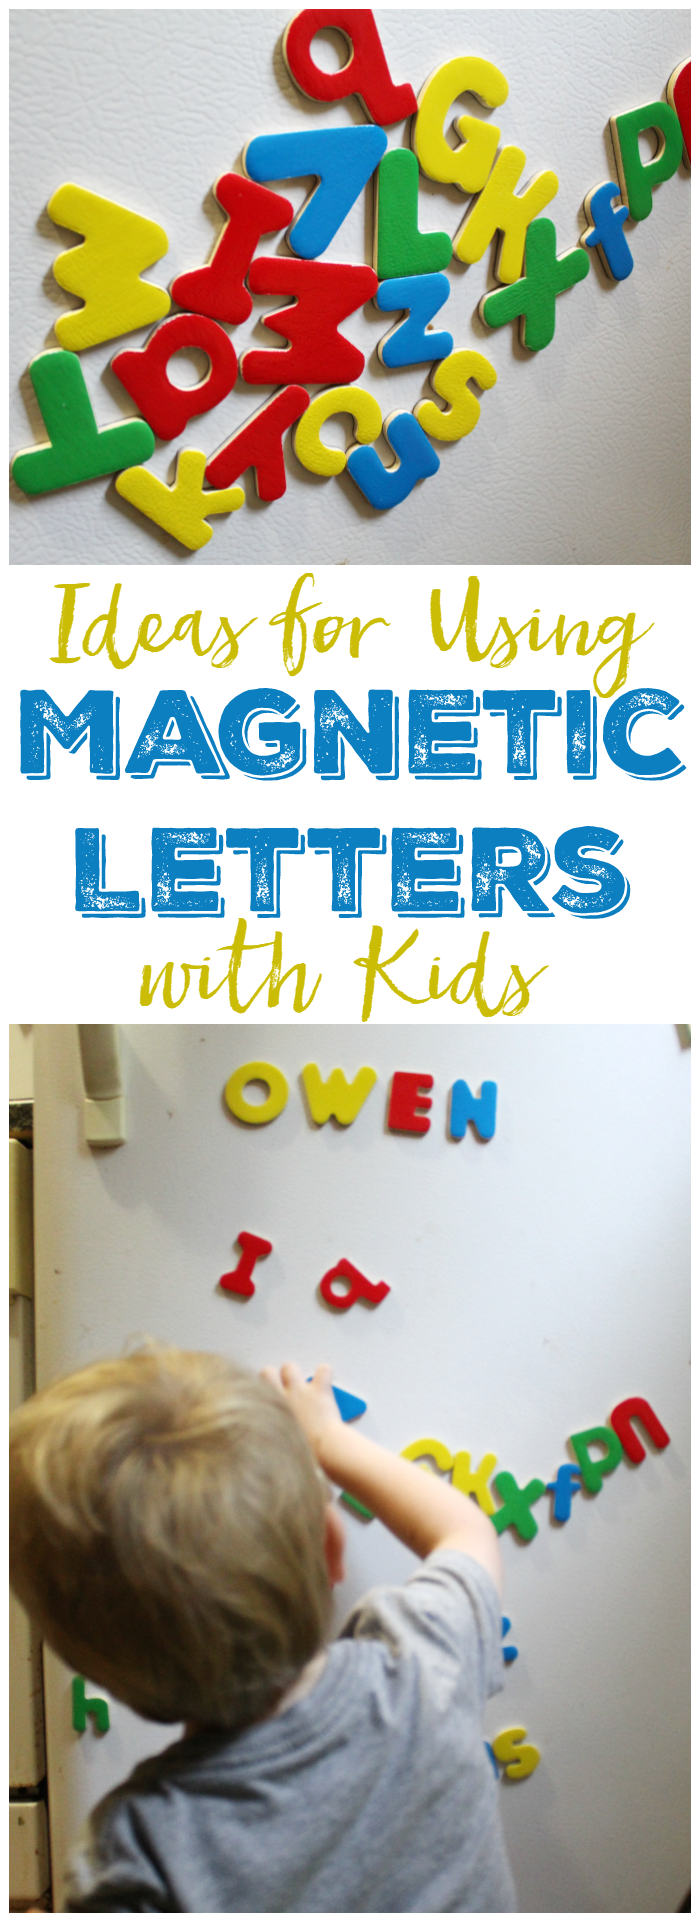 Ideas for Using Magnetic Letters with Kids